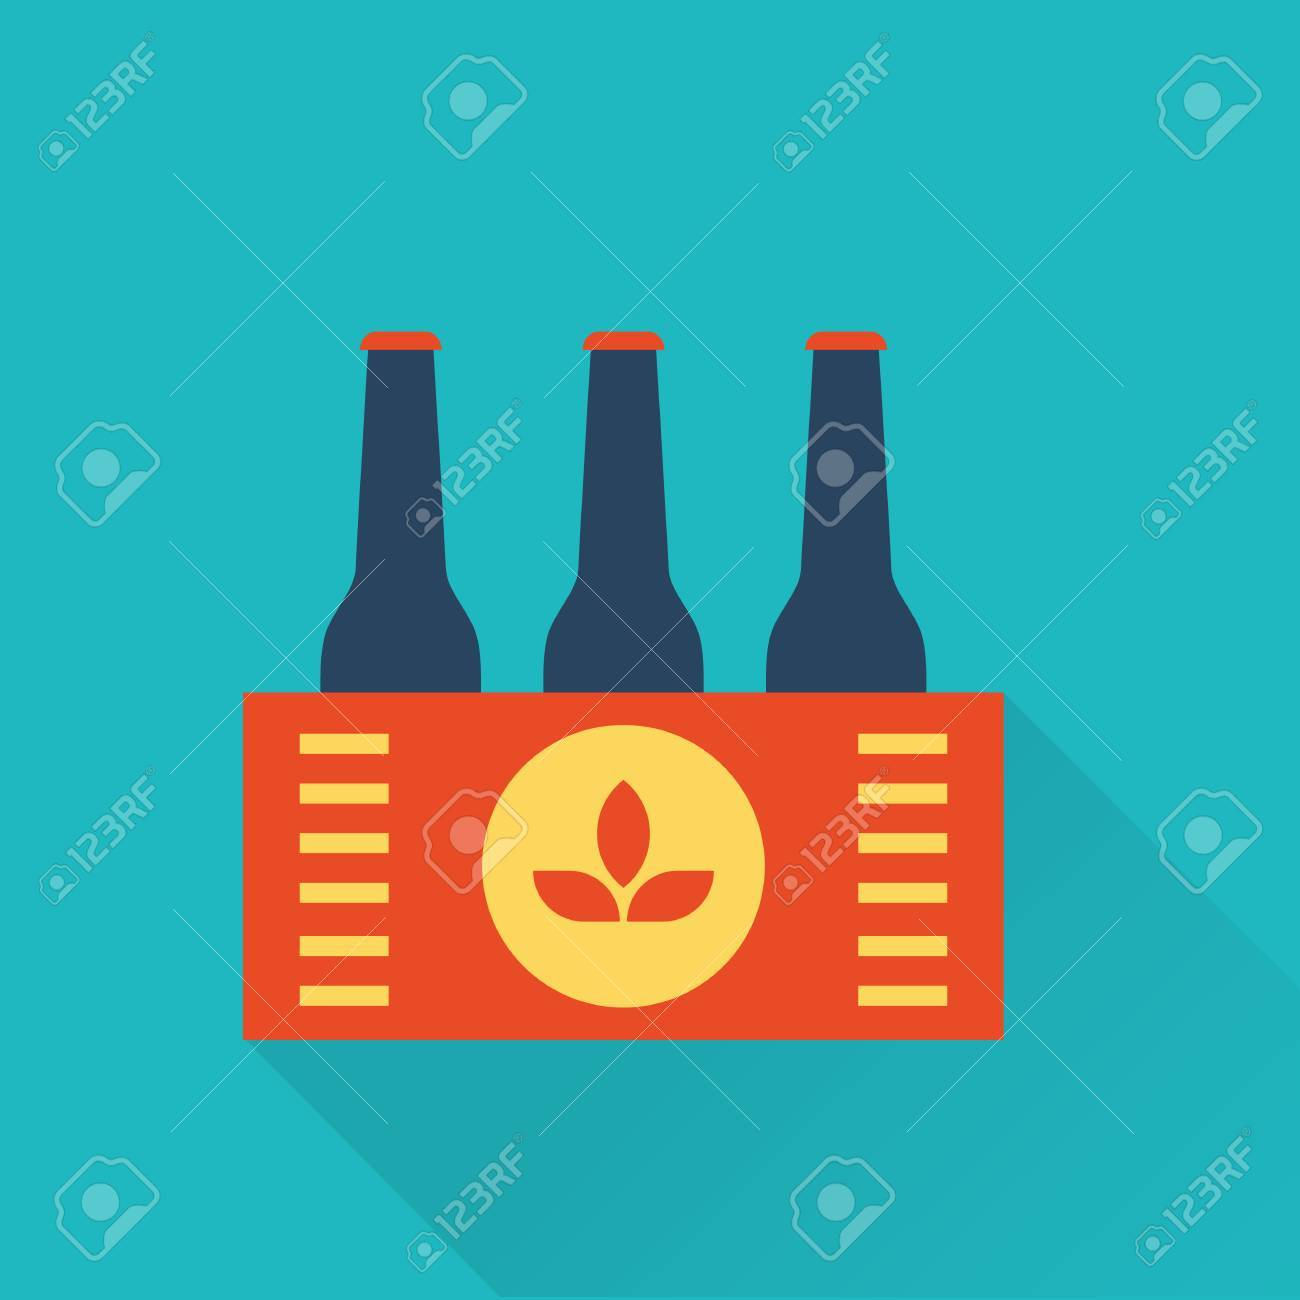 Six Pack Of Beer Bottles In A Box Royalty Free Cliparts Vectors And Stock Illustration Image 35997696